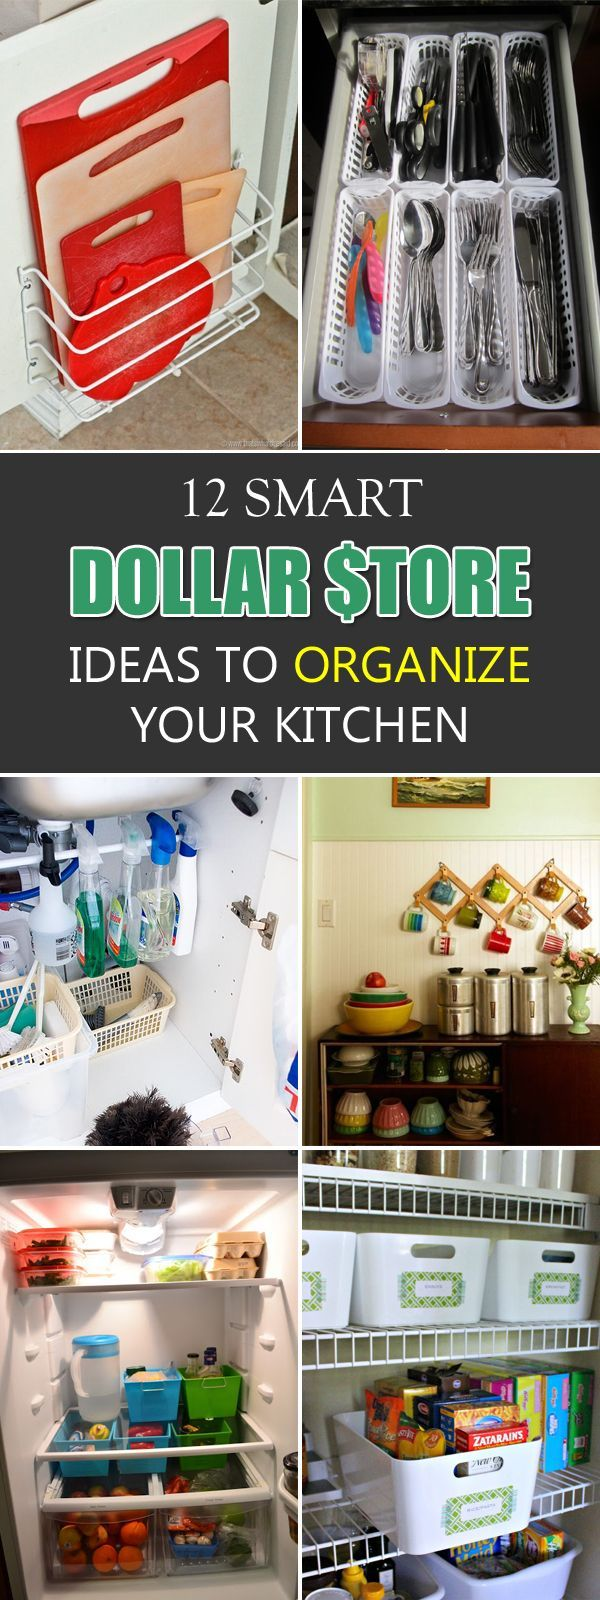 Best 10+ Apartment kitchen organization ideas on Pinterest ...